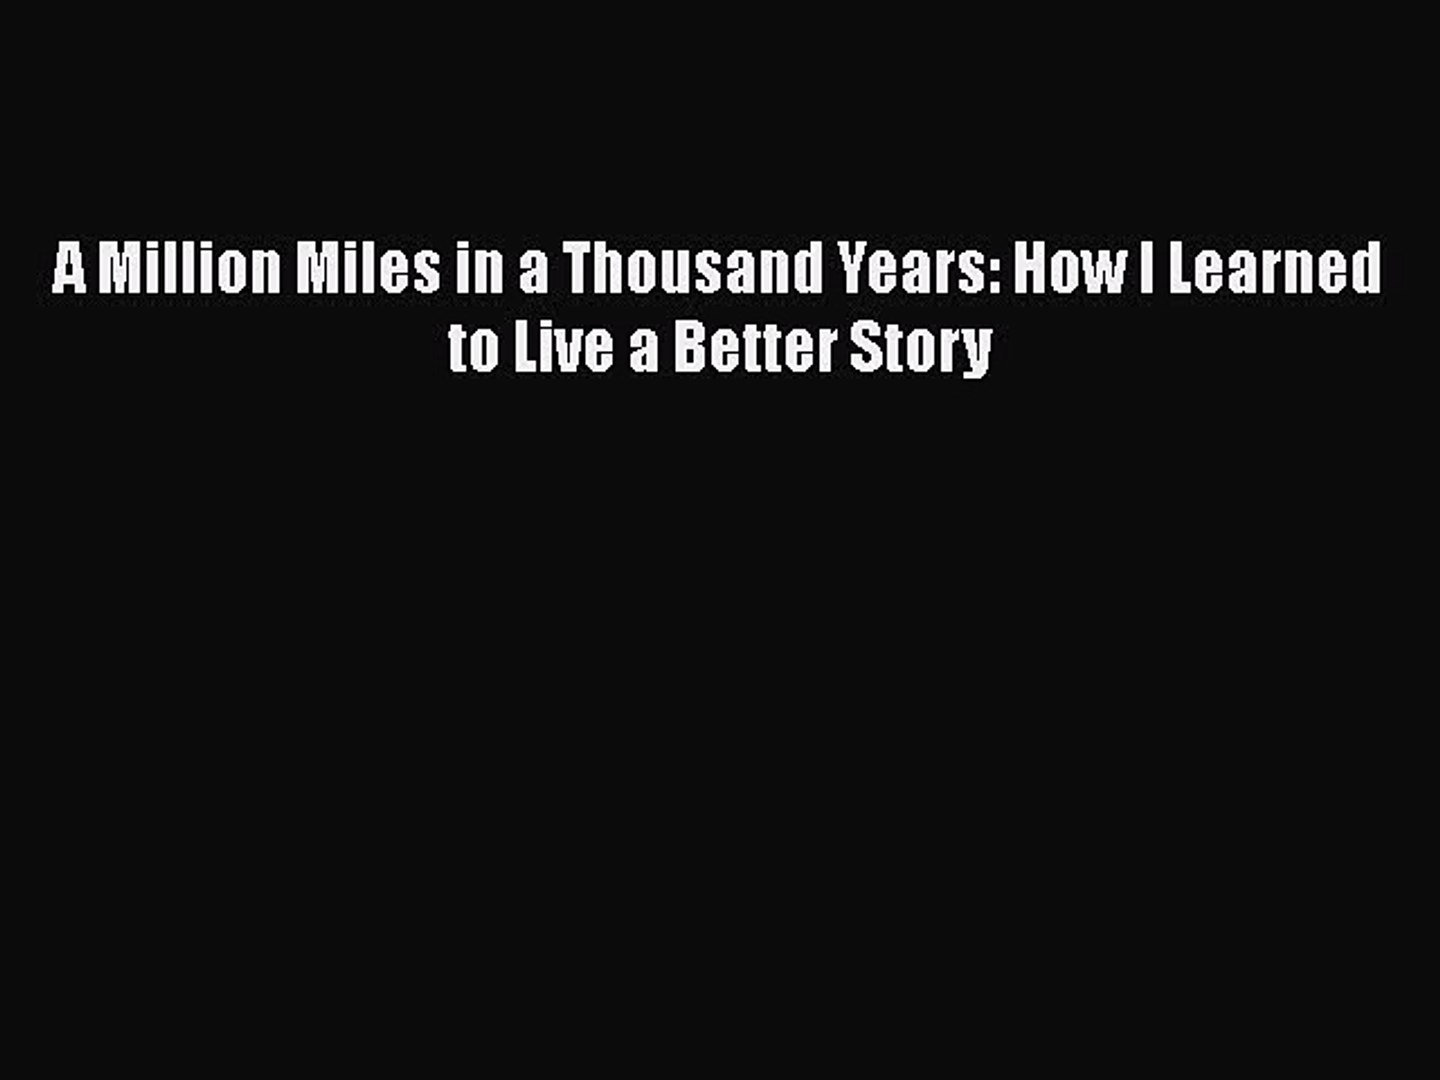 Download A Million Miles in a Thousand Years: How I Learned to Live a Better Story  Read Online